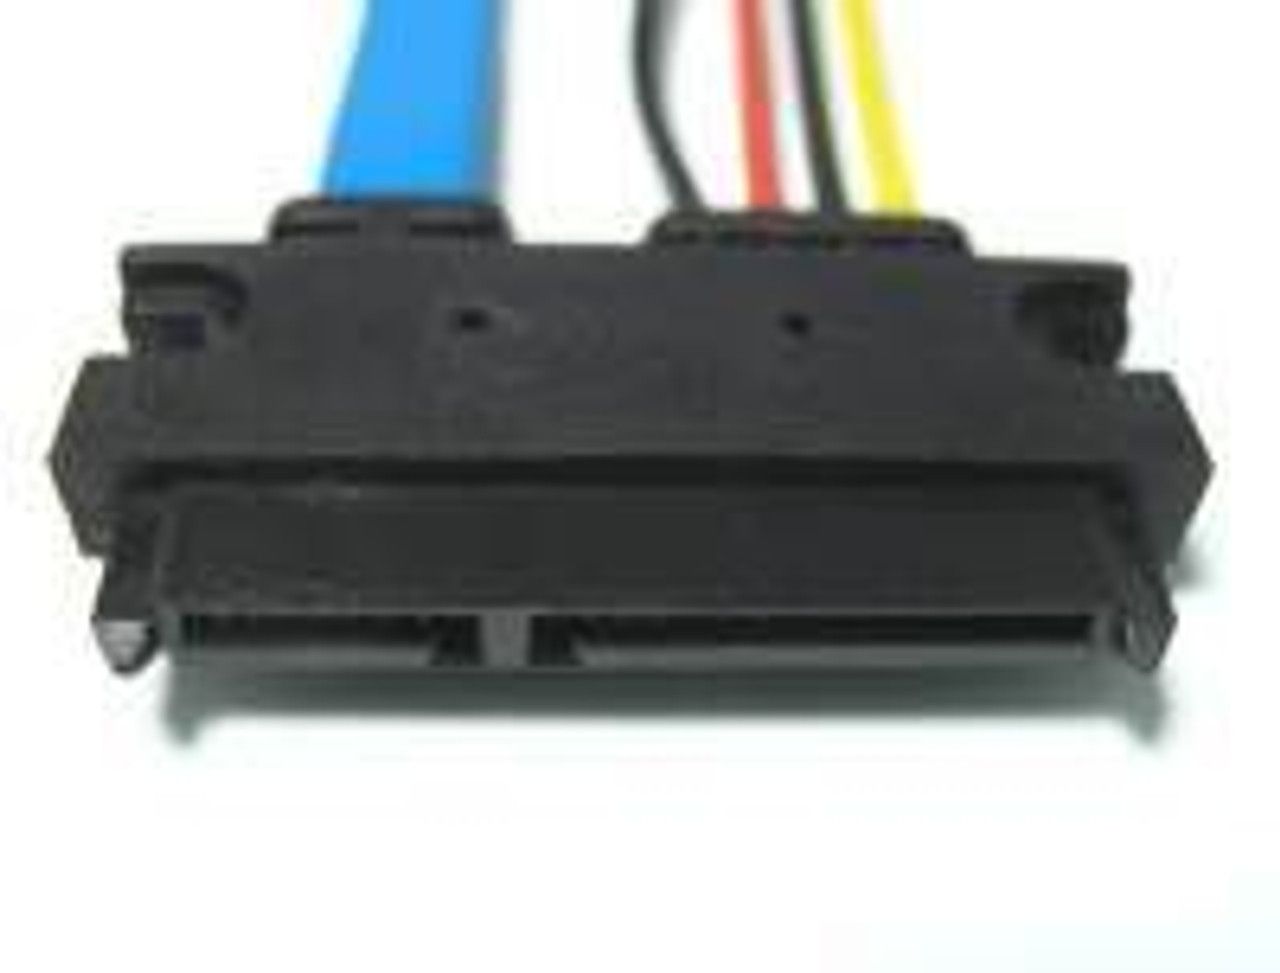 SATA Extension Cable